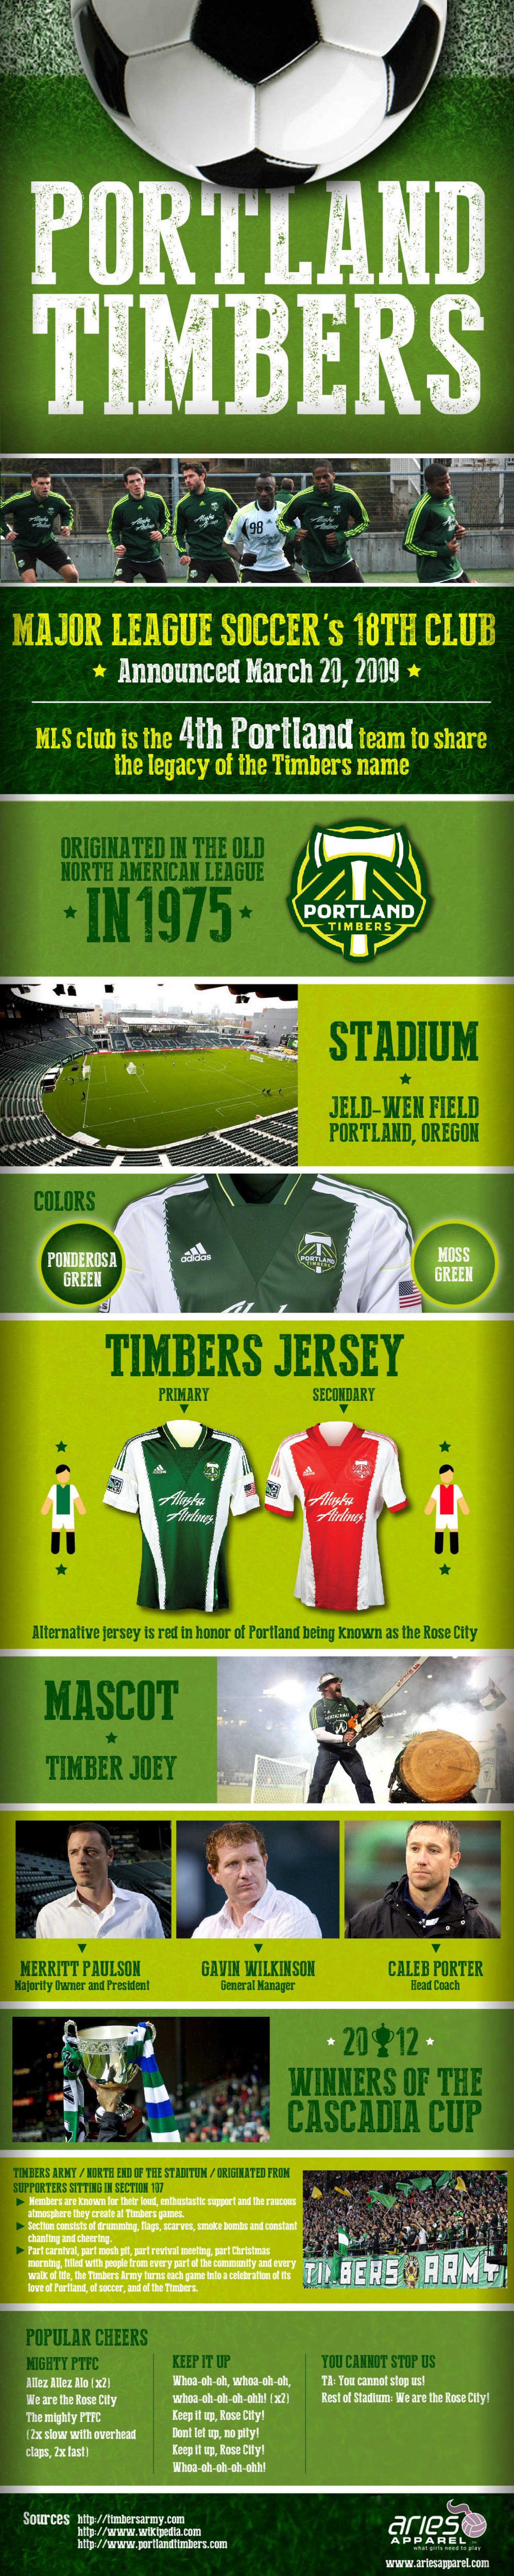 Portland Timbers Infographic